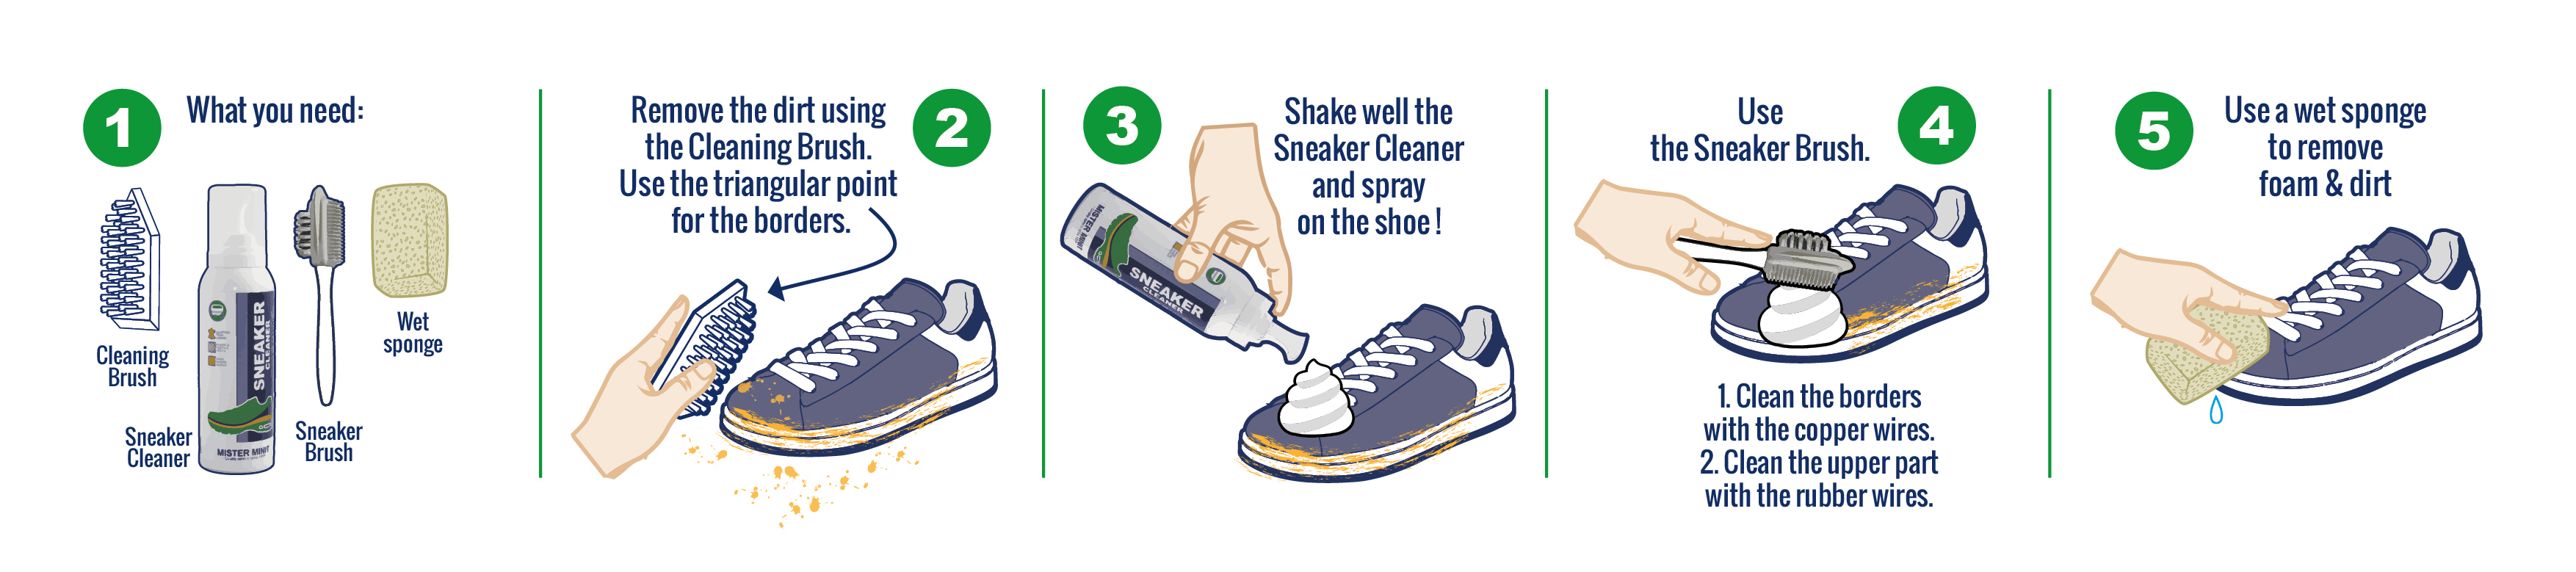 SneakerCleaner_steps.jpg#asset:12593